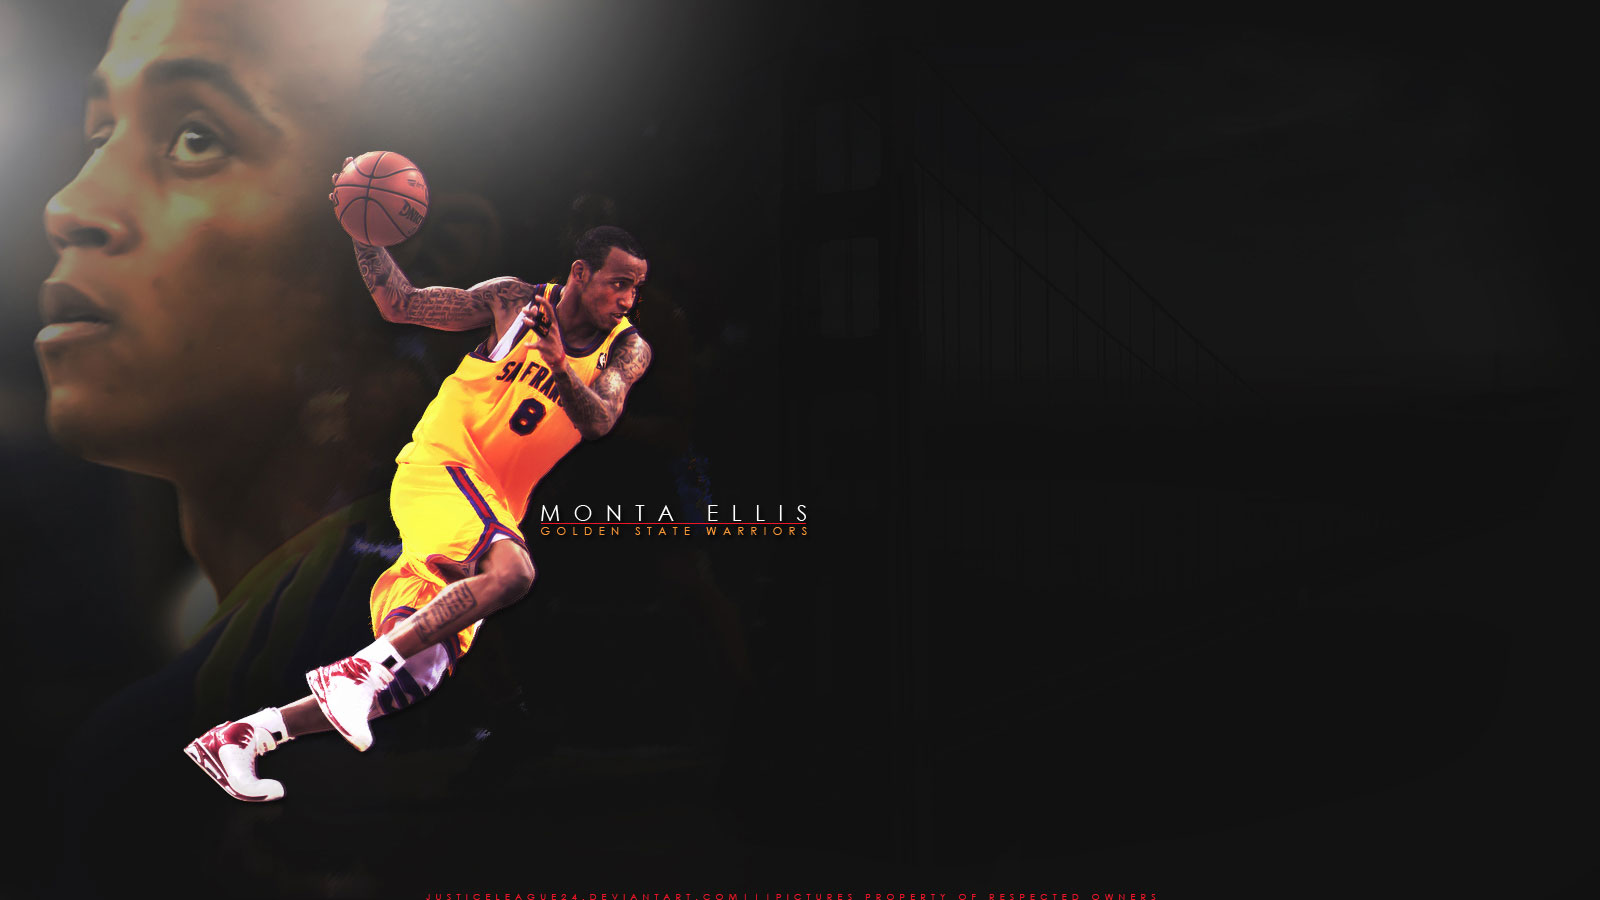 MONTA ELLIS - Basketball Wallpapers